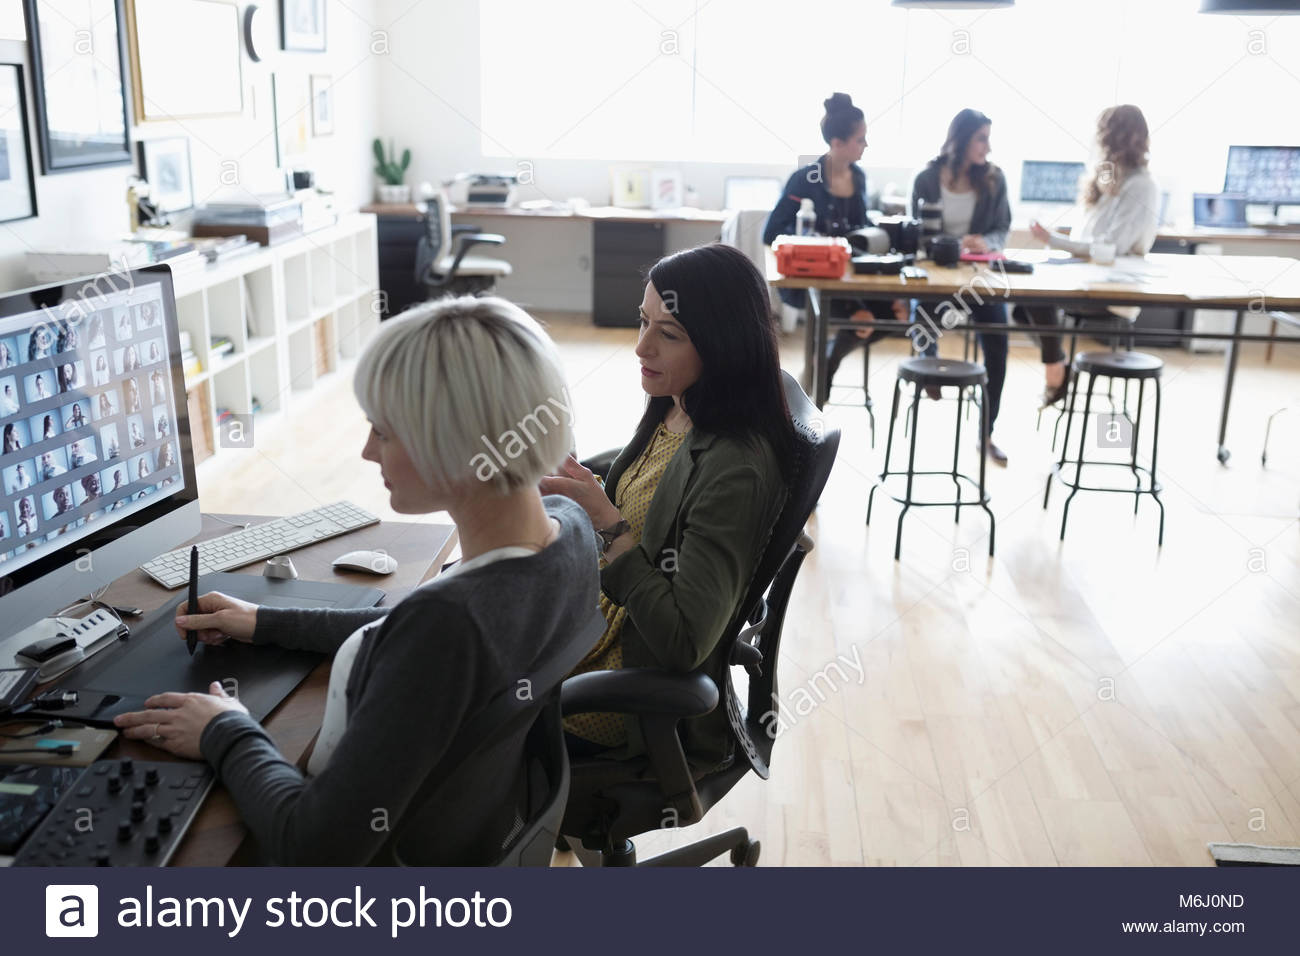 Female photo editors with graphics tablet editing digital photo proofs on computer in office - Stock Image